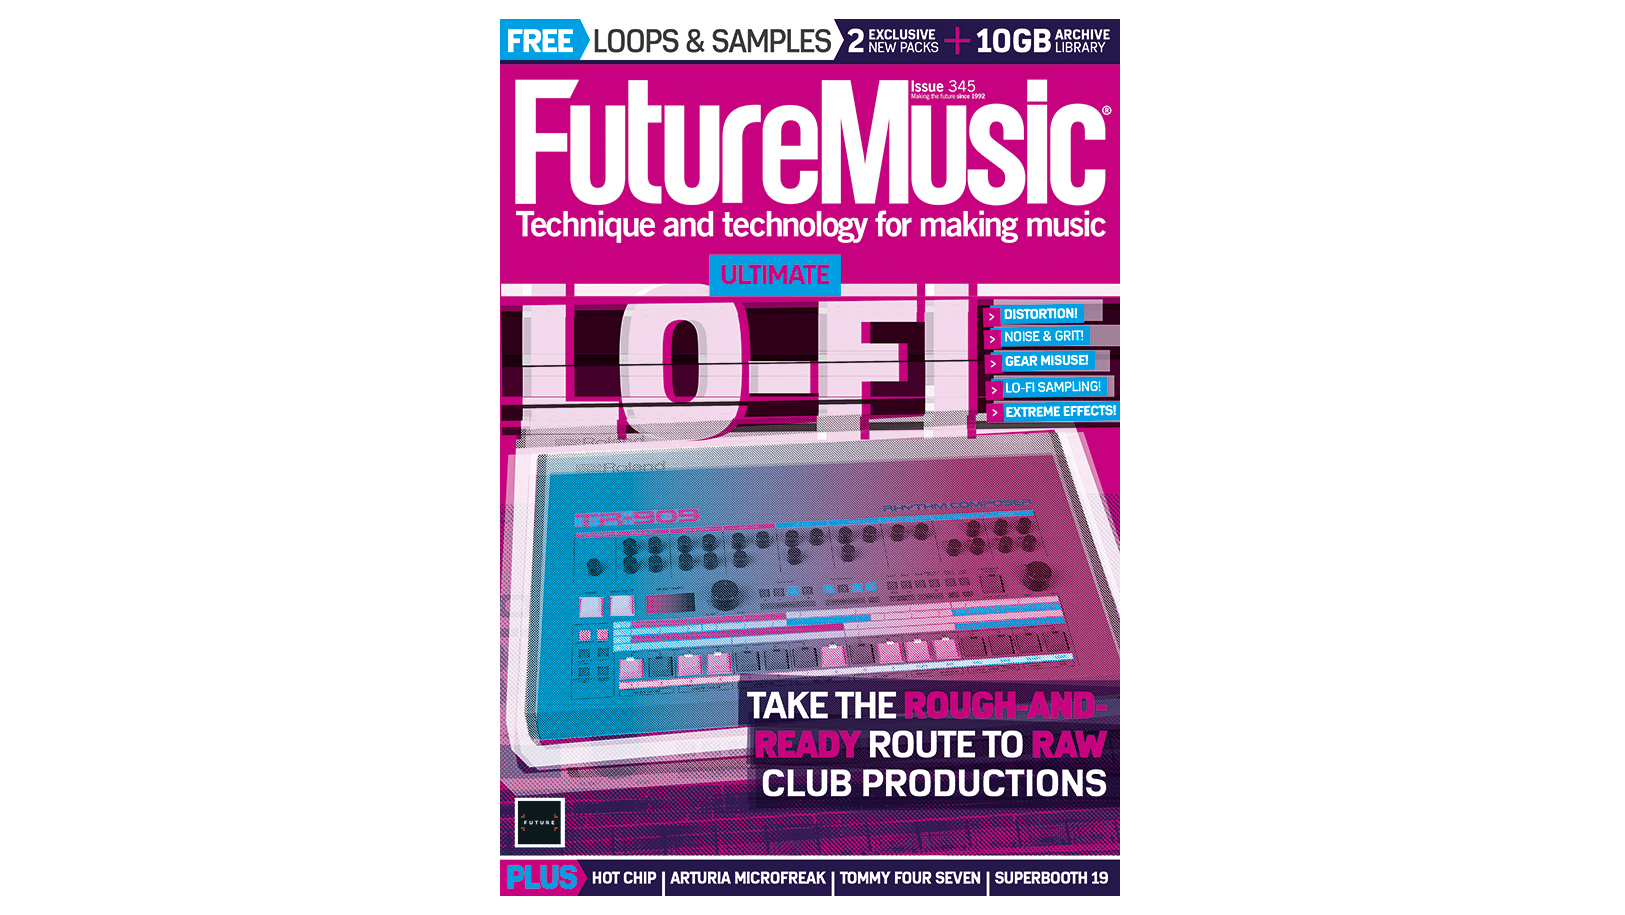 Issue 345 of Future Music is on sale now | MusicRadar